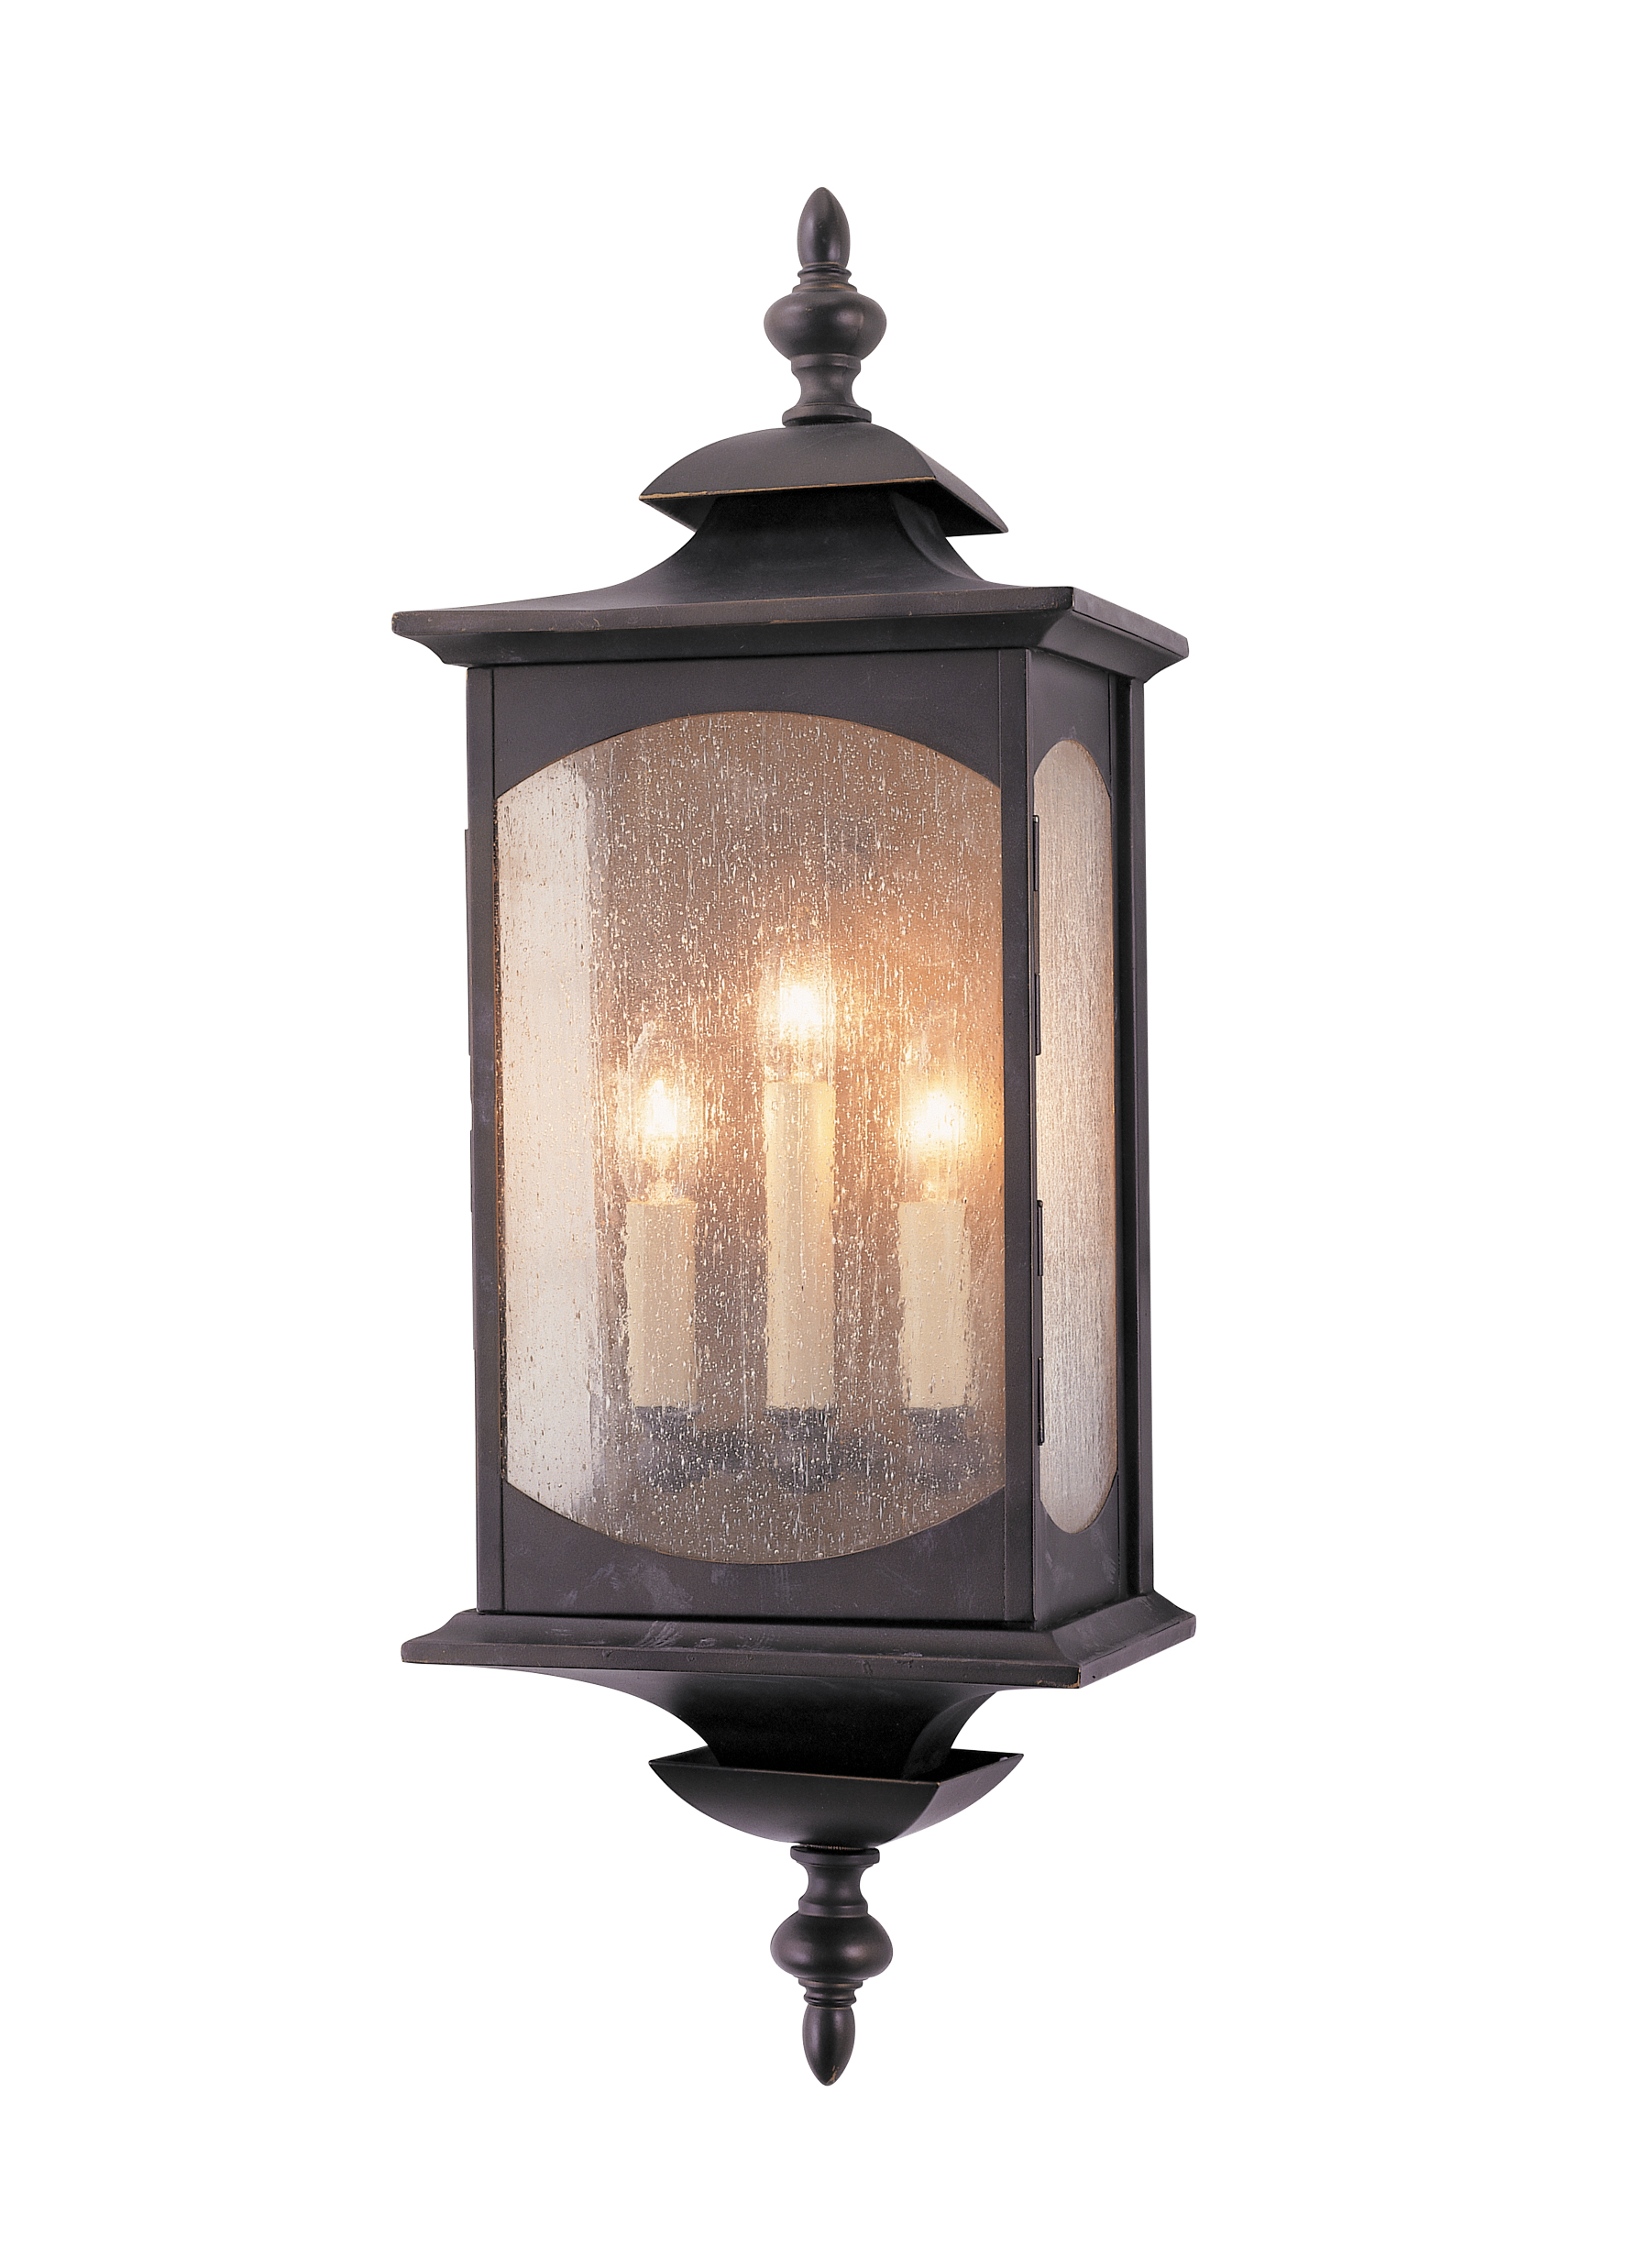 Lighting Wall Lights Ol2602orb 3 Light Wall Lantern Oil Rubbed Bronze